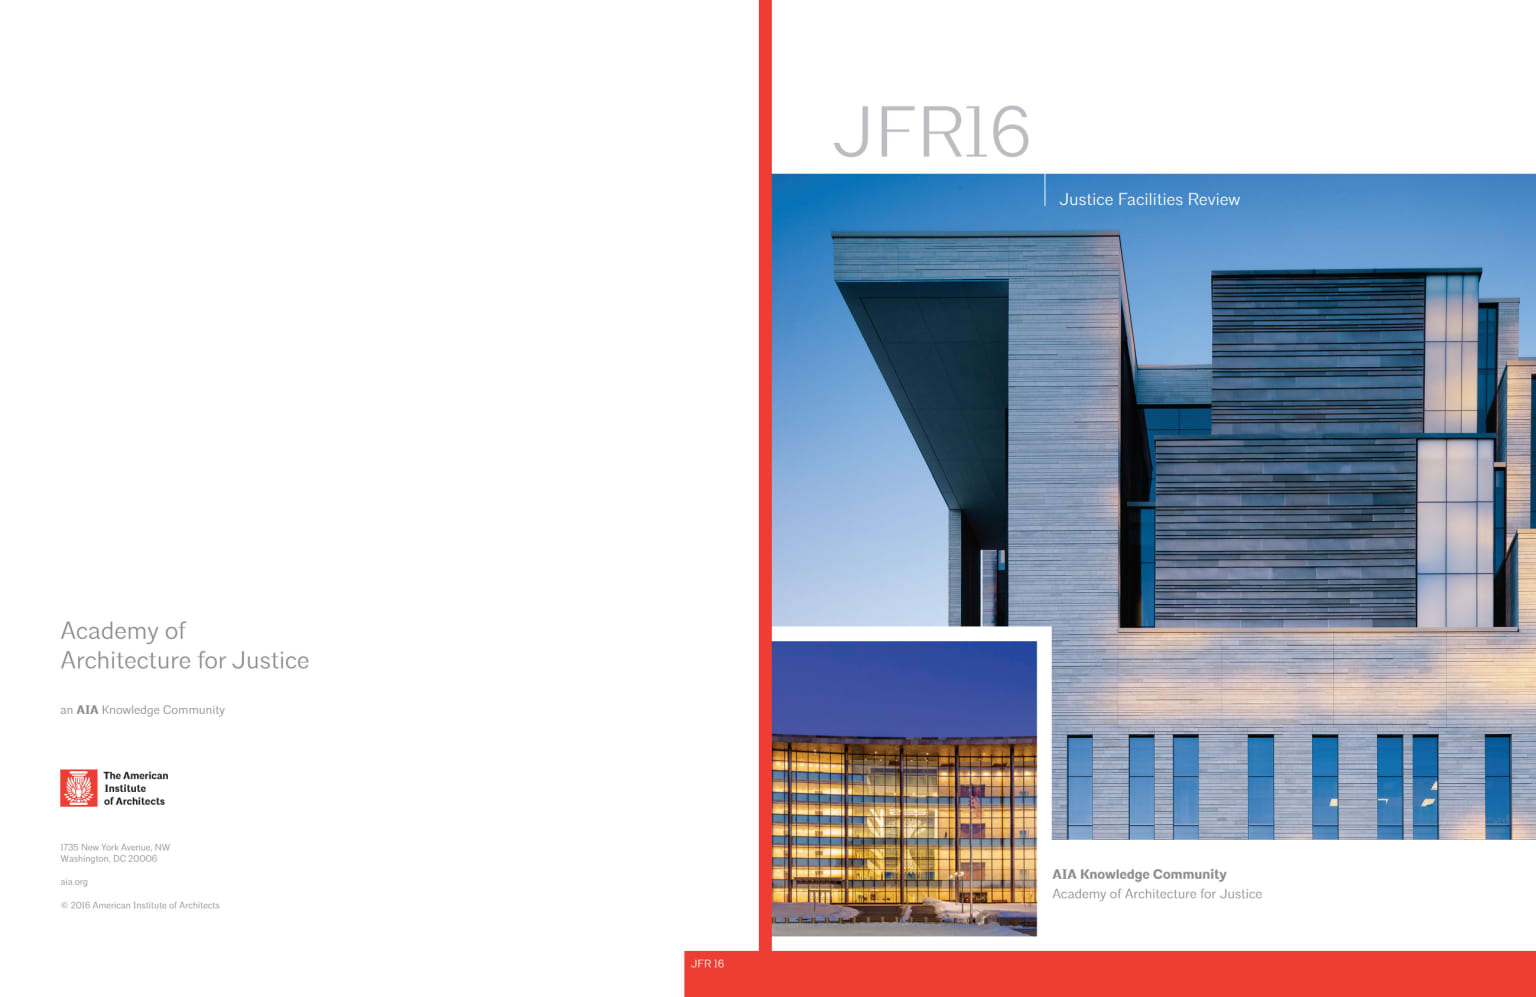 The American Institute of Architects Awards Book